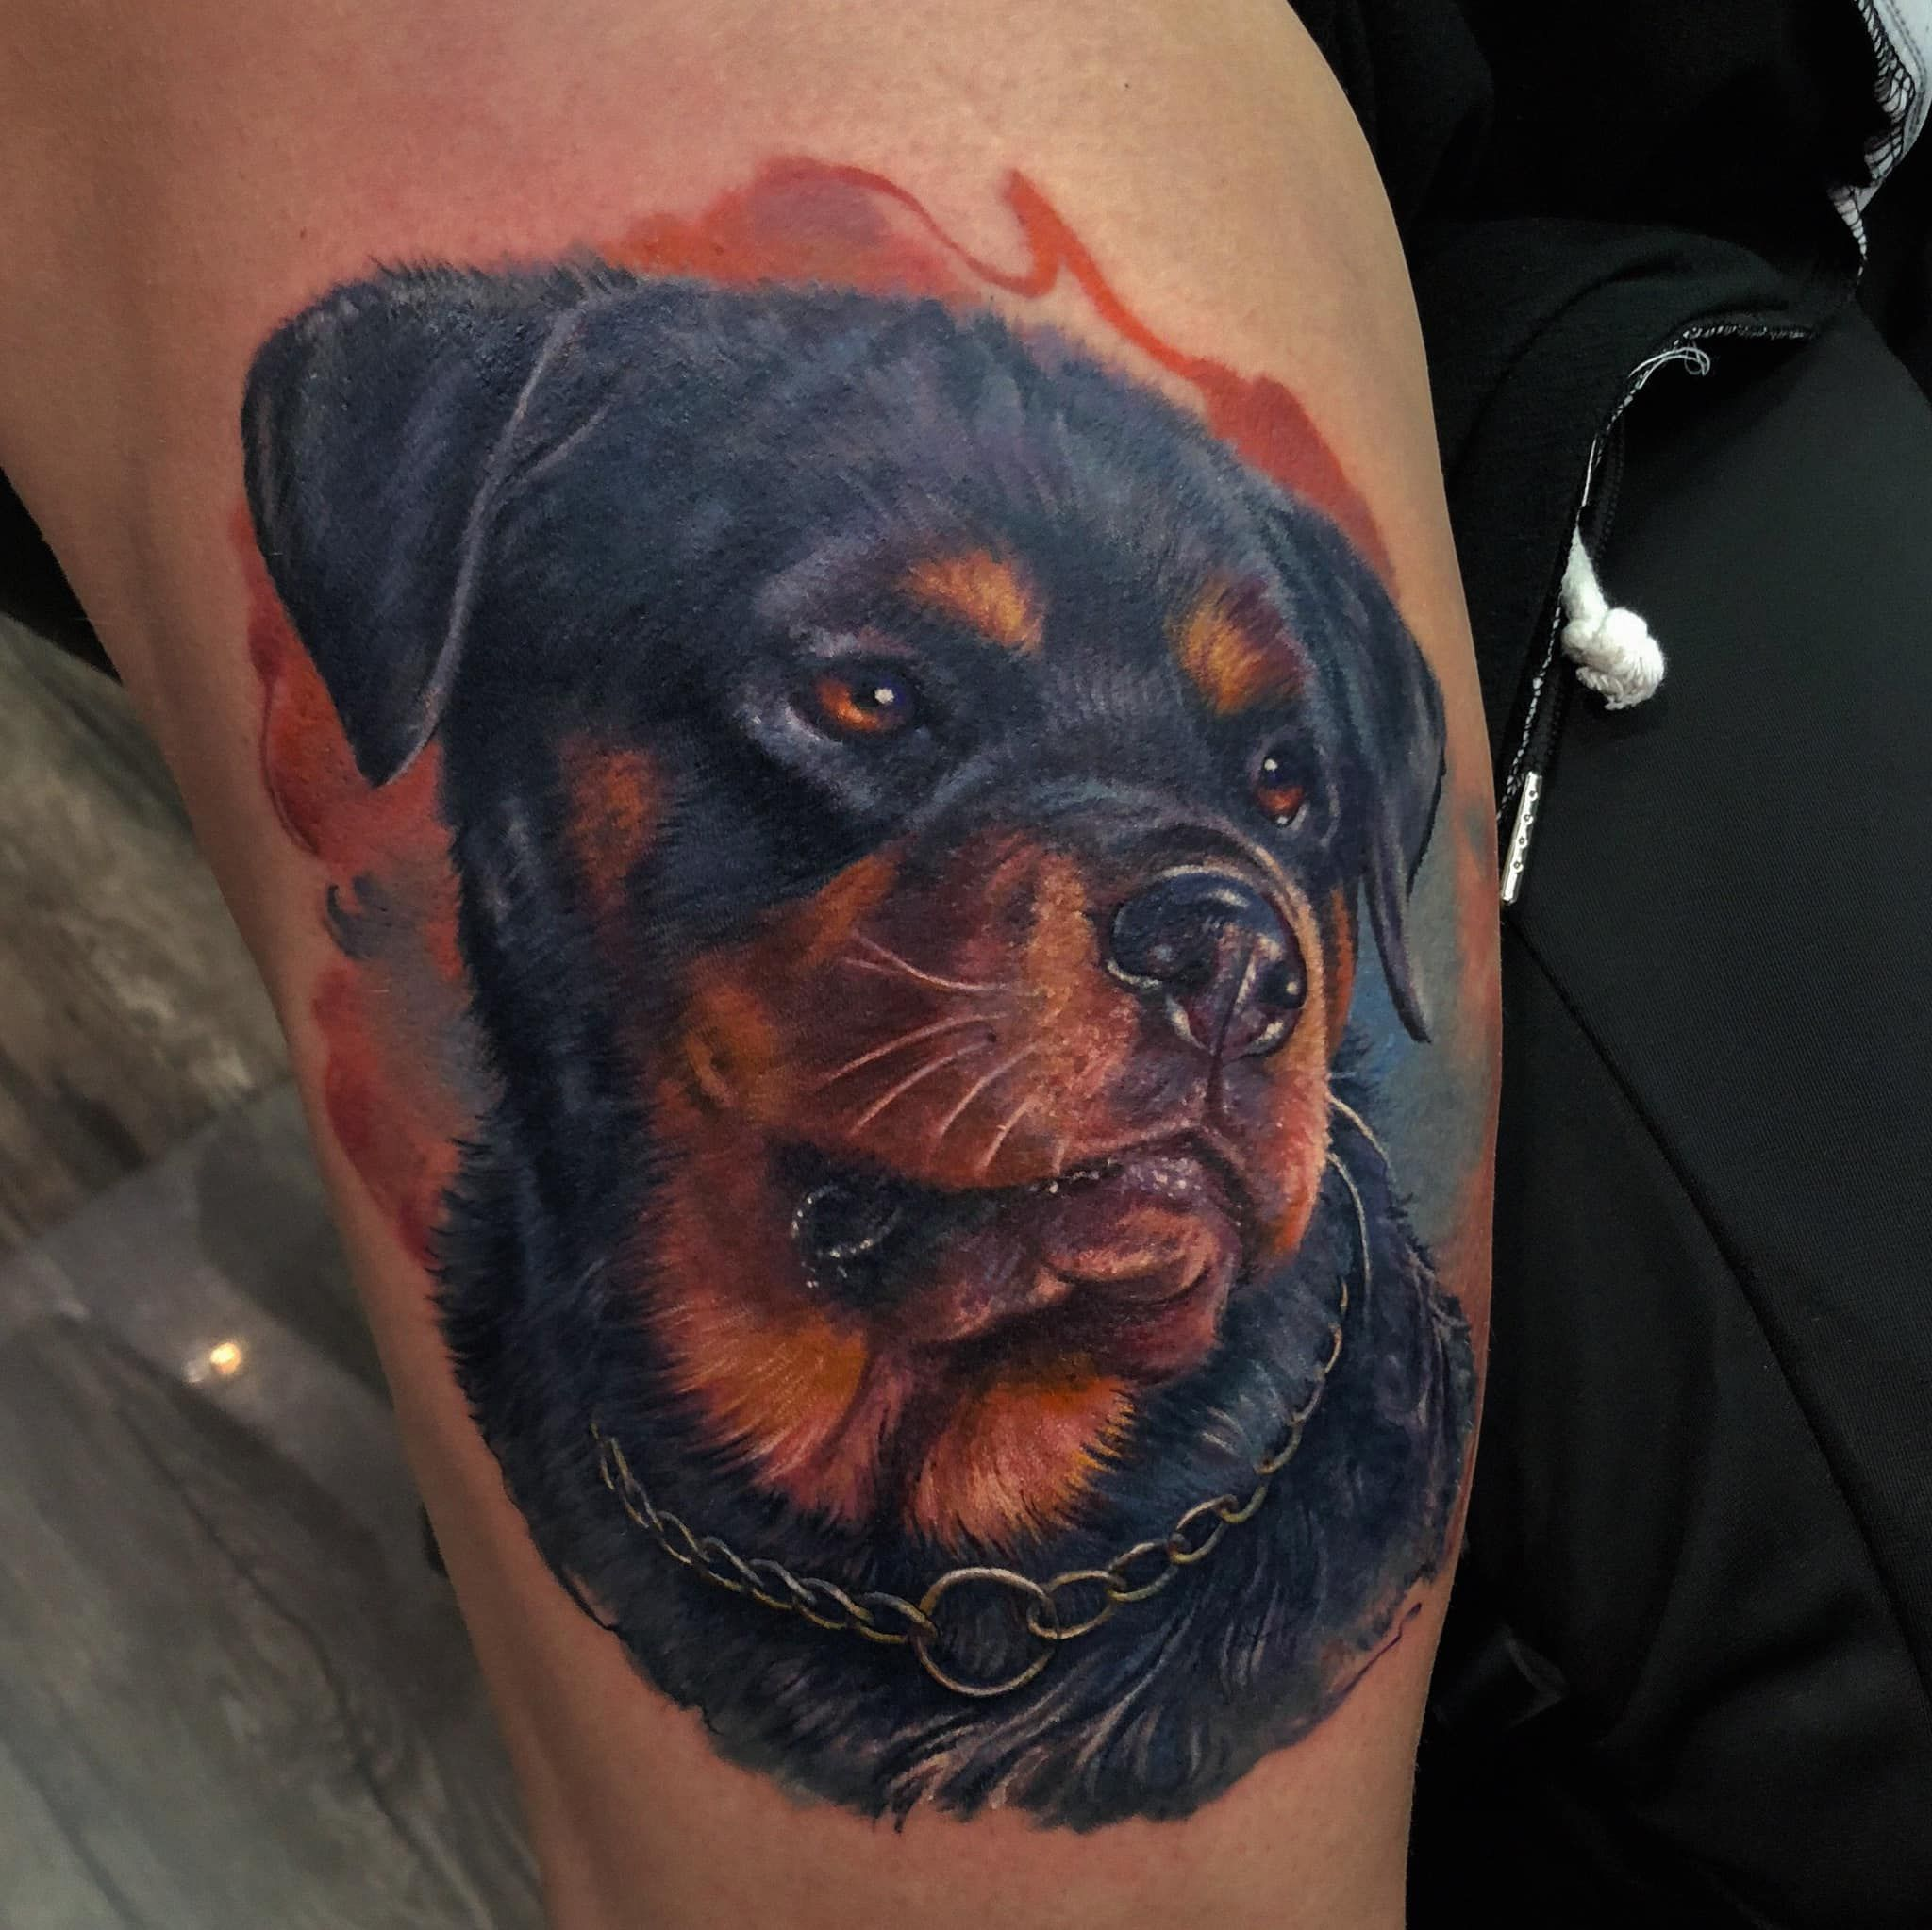 Rottweiler Rottweilertattoo Hundeportrait Realistic Realistictattoo Hautkultur Ihordankovych Tattoomannhe Godfather Tattoo Dog Tattoo Rottweiler Tattoo